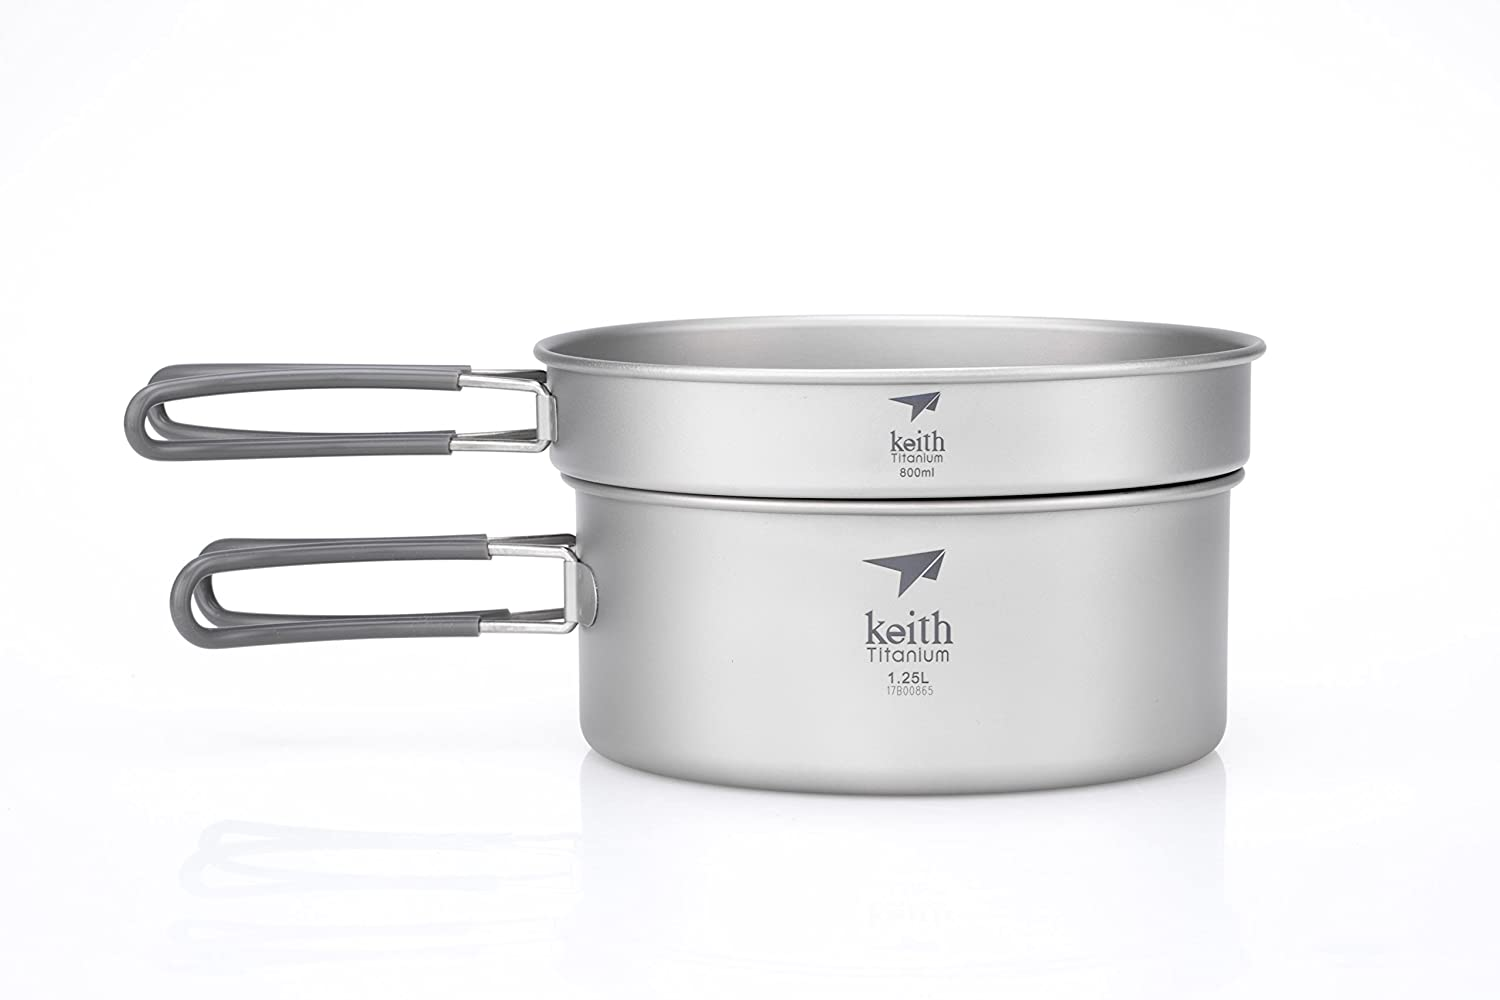 Keith Titanium Ti6017 2-Piece Pot and Pan Cook Set - 2.05 L (Limited Time Price)